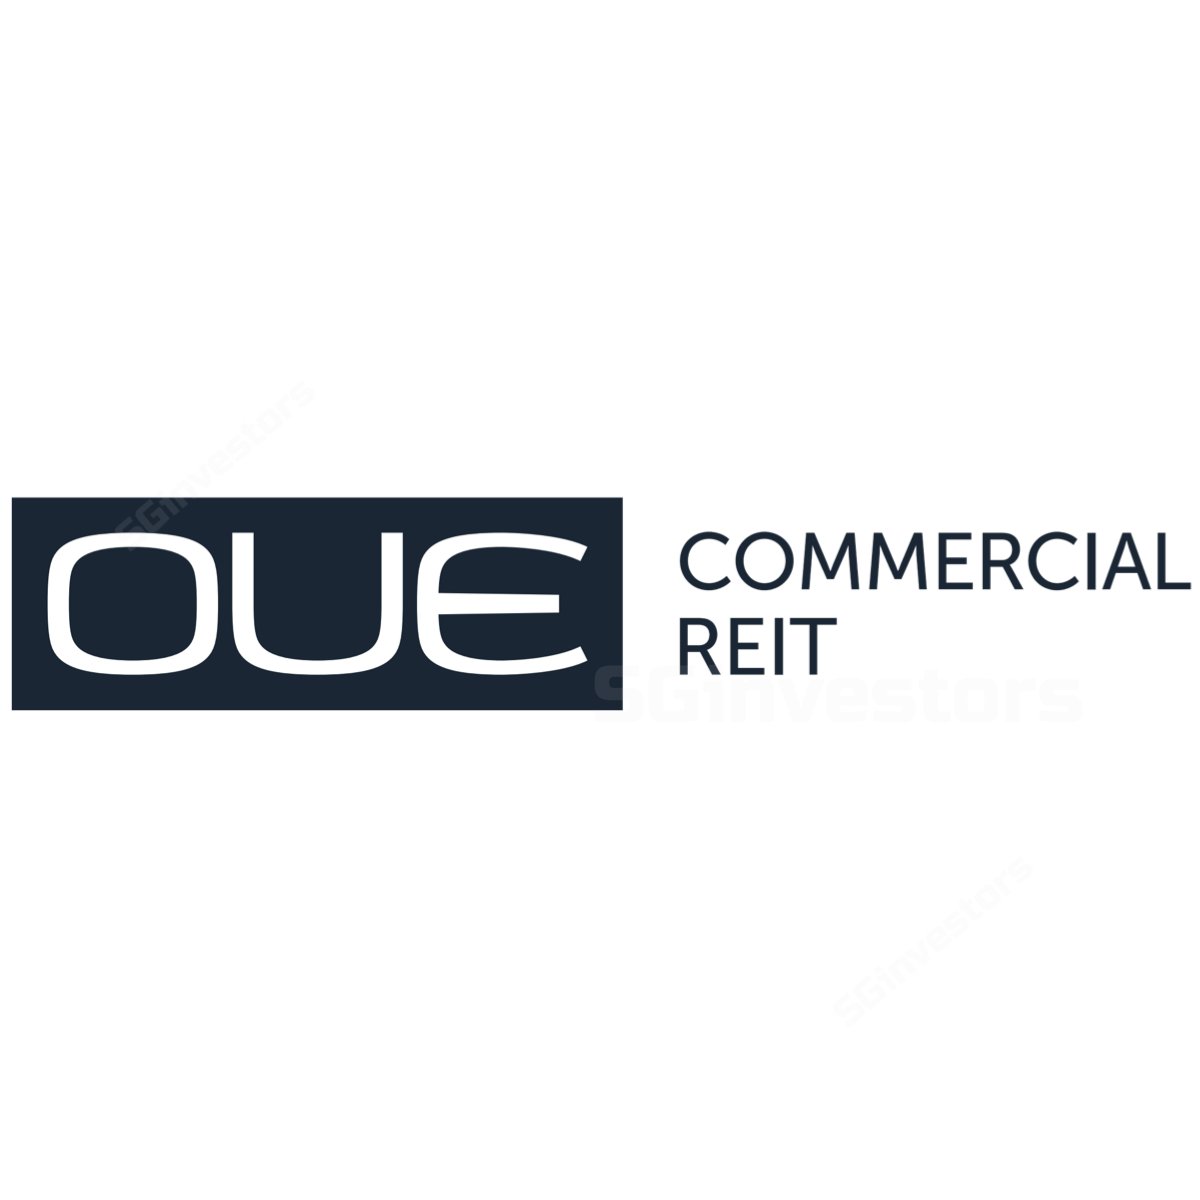 OUE Commercial REIT - OCBC Investment 2018-05-11: Negative Reversions Still; Waiting For Recovery